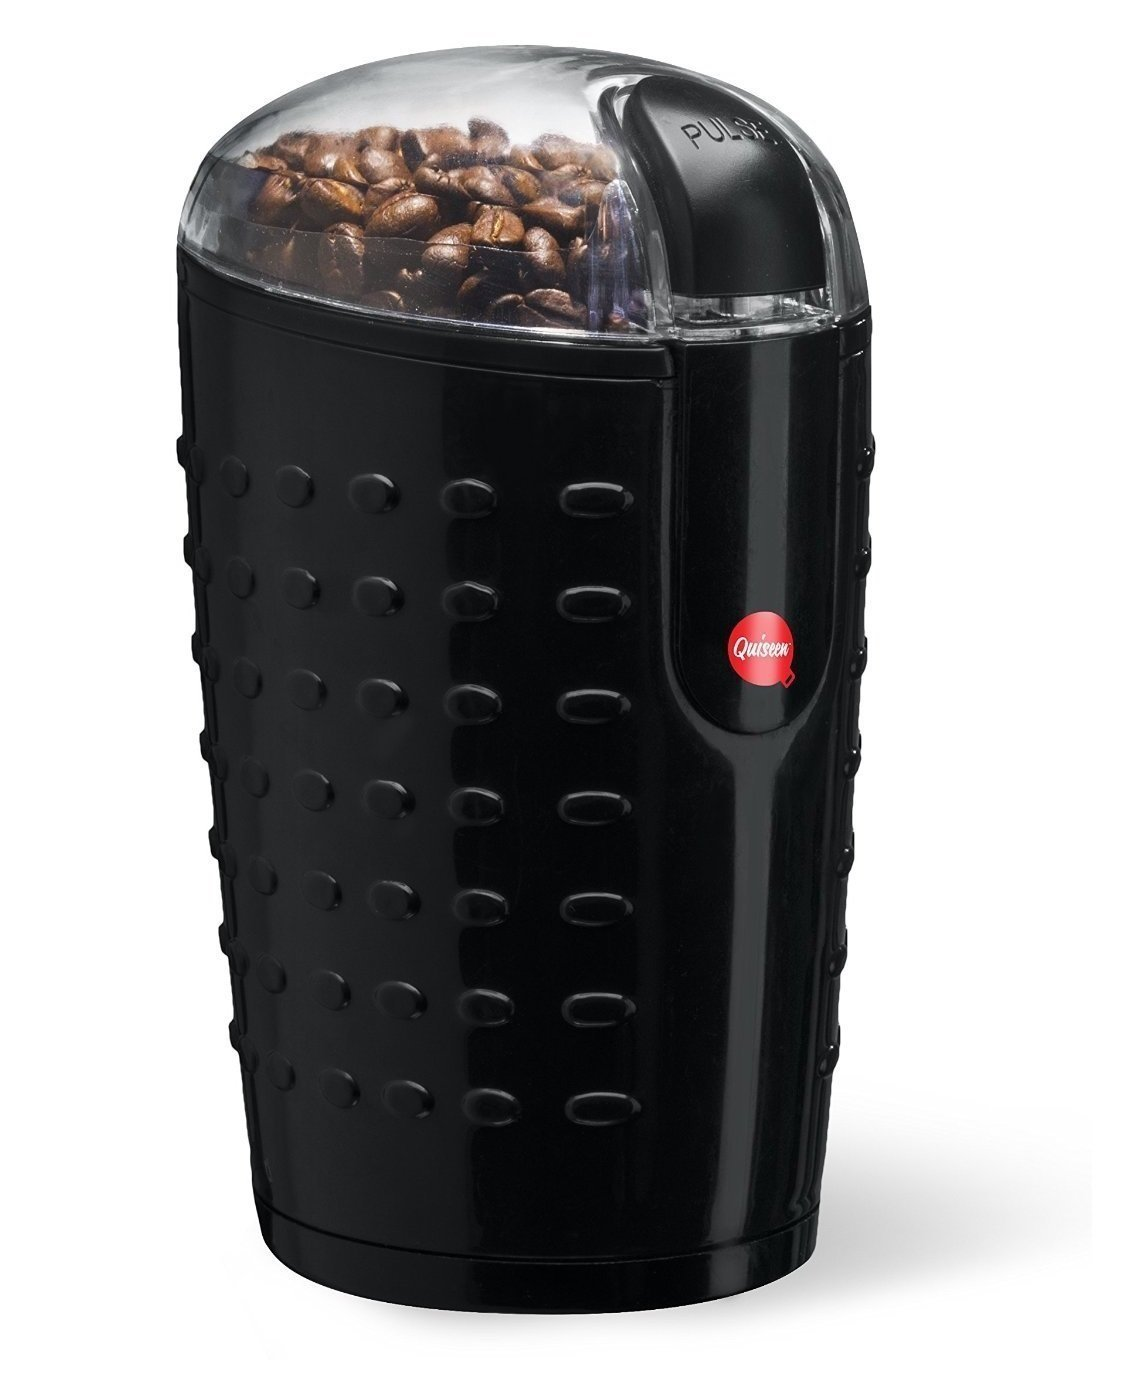 Quiseen One-Touch Electric Coffee Grinder. Grinds Coffee Beans, Spices, Nuts and Grains - Durable Stainless Steel Blades (Black) by Quiseen Q-CG001